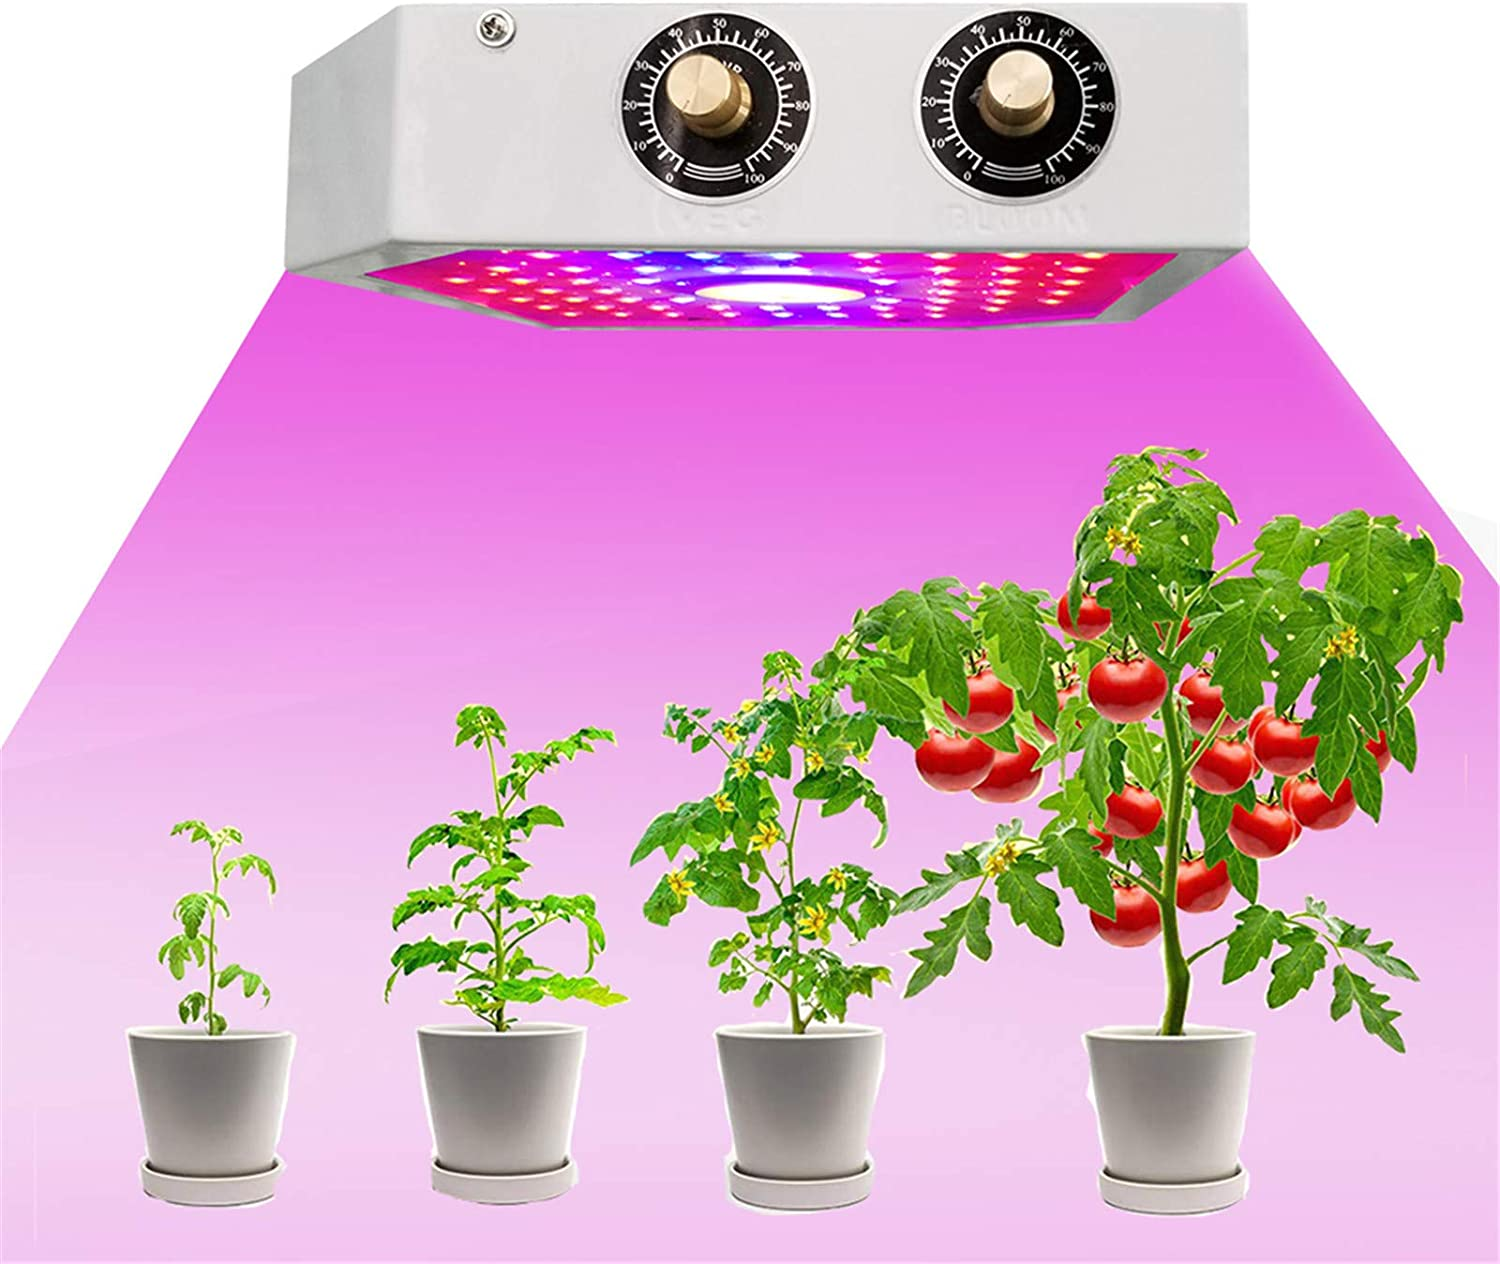 TJHSM LED Grow Lights for Indoor Plants New mail order Spectrum Full Growing Max 45% OFF La